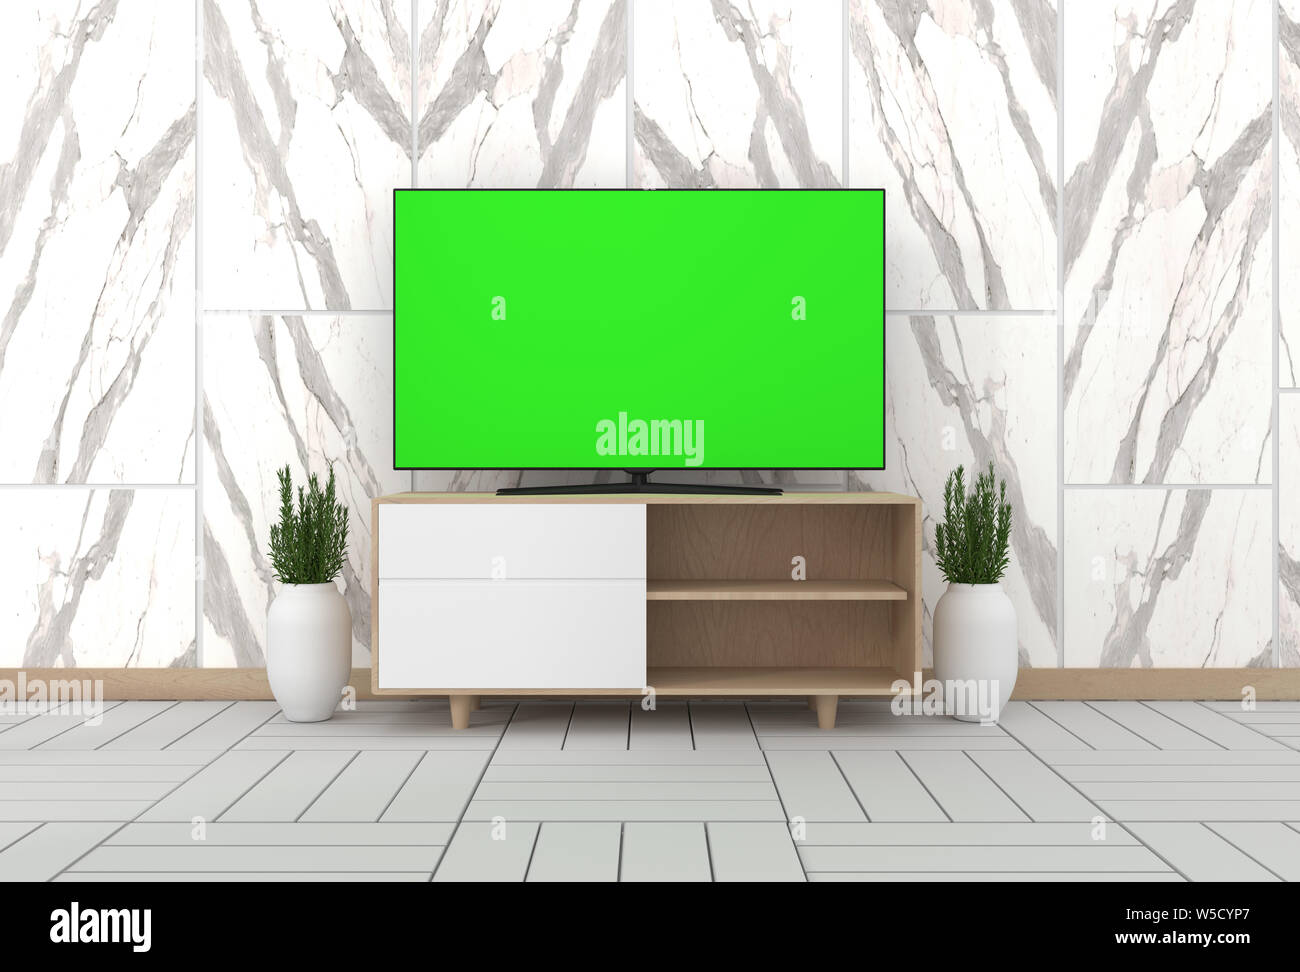 Smart Tv Mockup With Blank Green Screen Hanging On The Cabinet Decor Modern Living Room Zen Style 3d Rendering Stock Photo Alamy